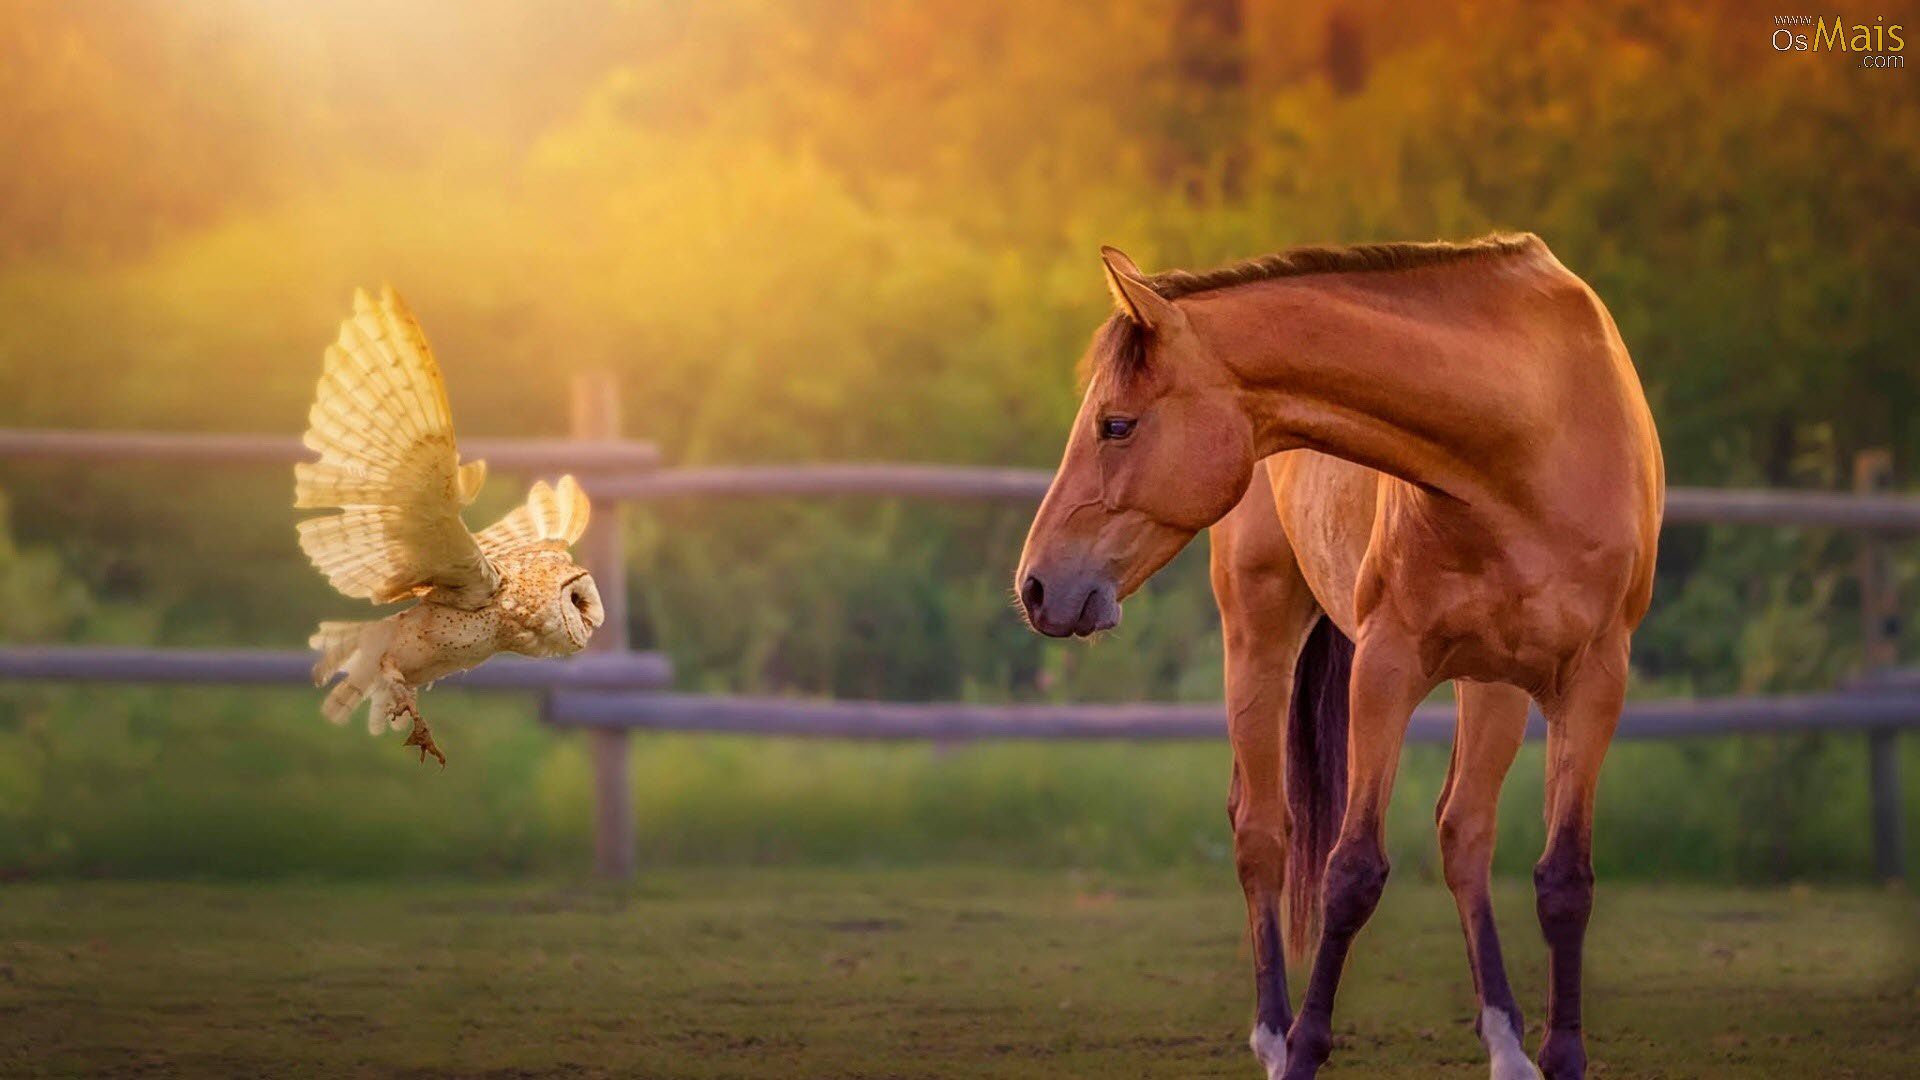 http://www.osmais.com/wallpapers/201604/animais-coruja-cavalo-wallpaper.jpg